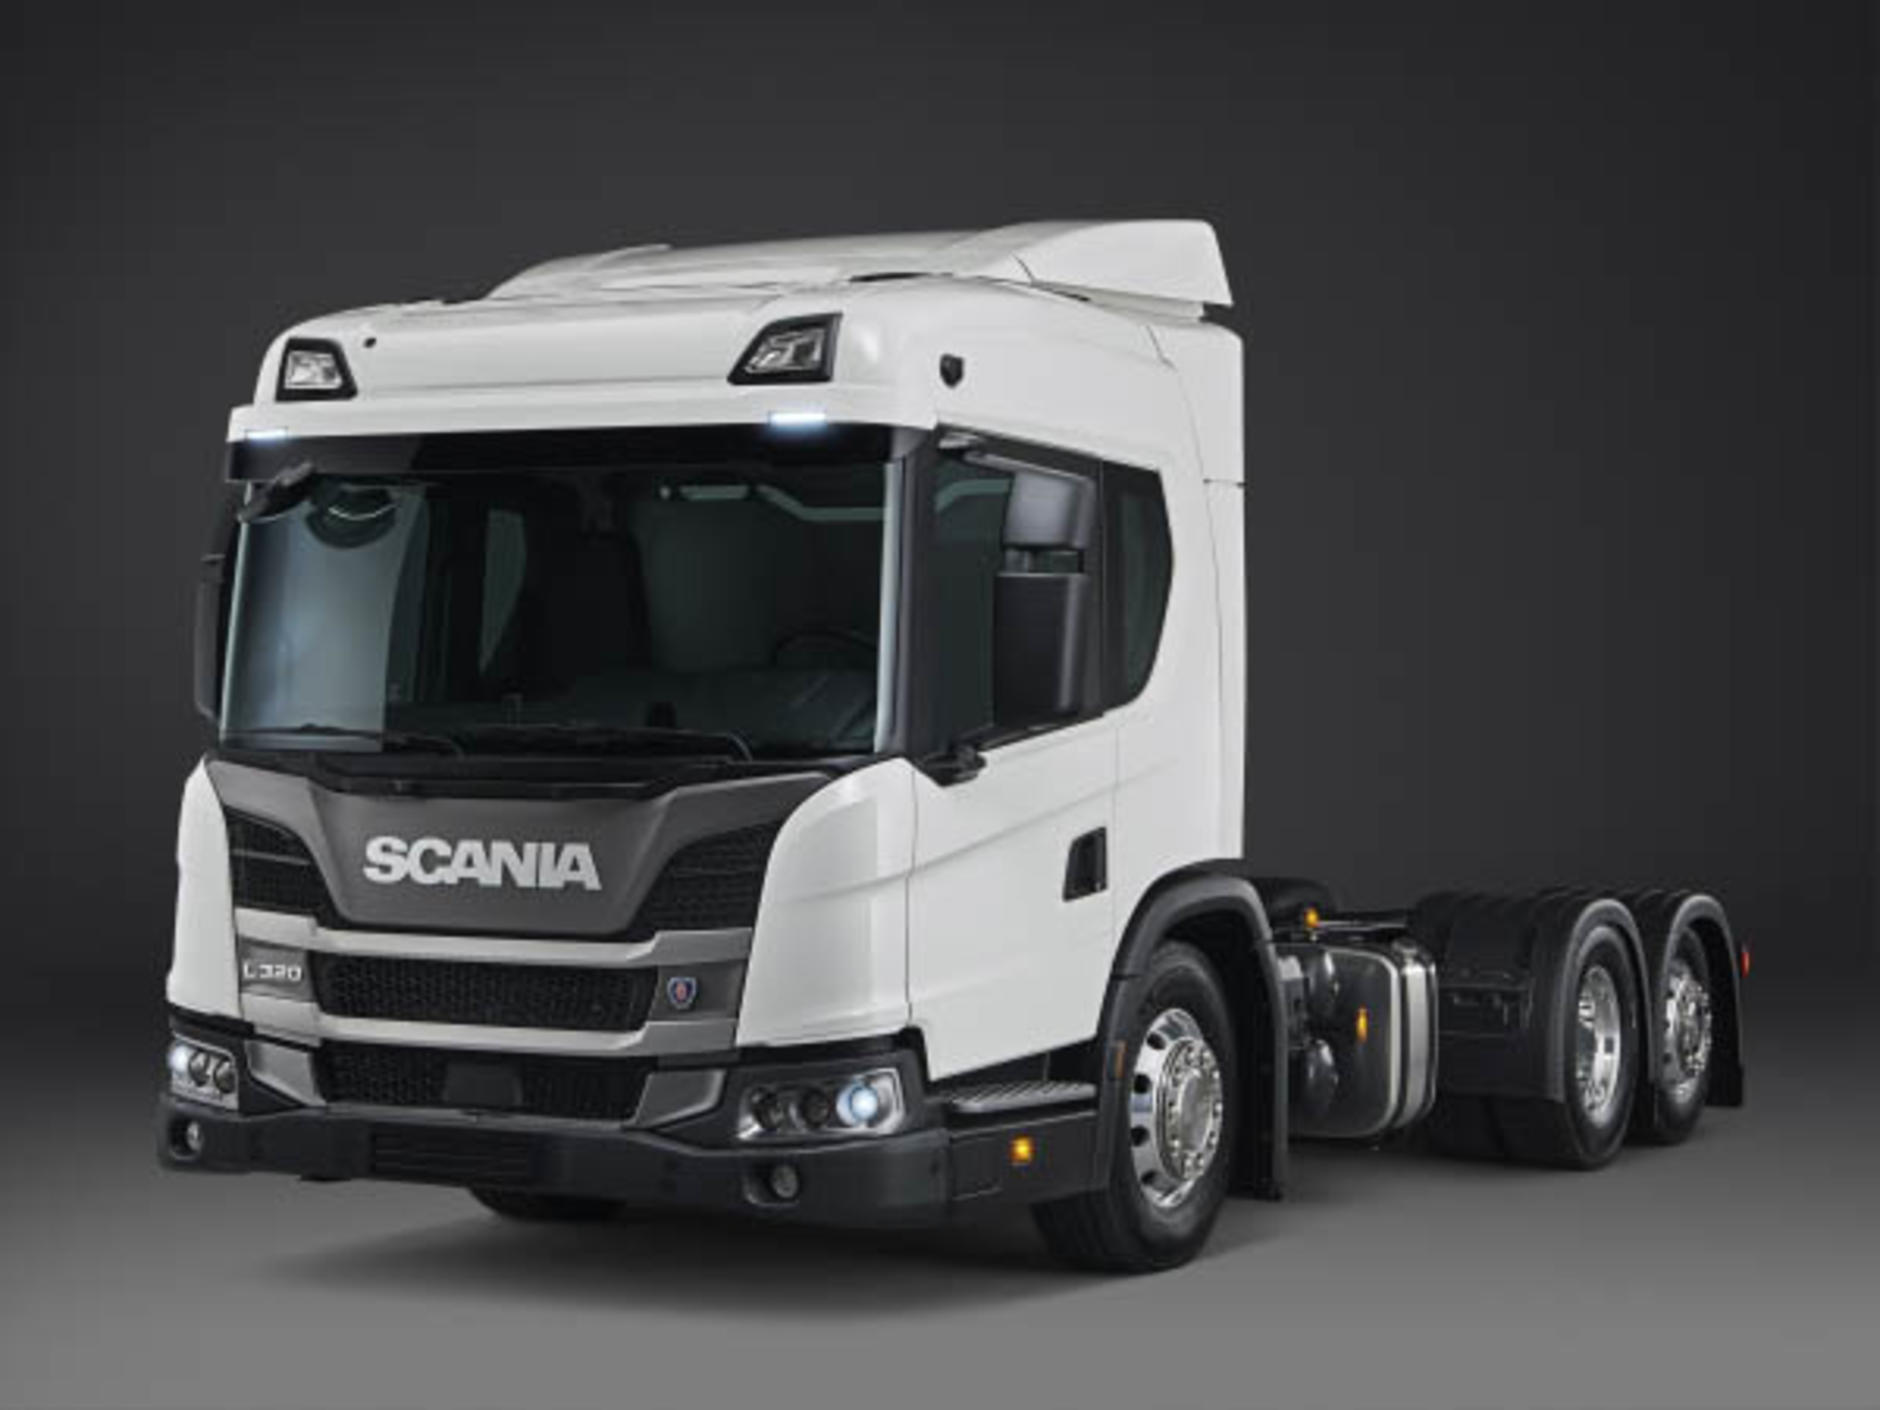 Volkswagen New Truck >> Scania L-series low entry truck announced | Commercial Motor